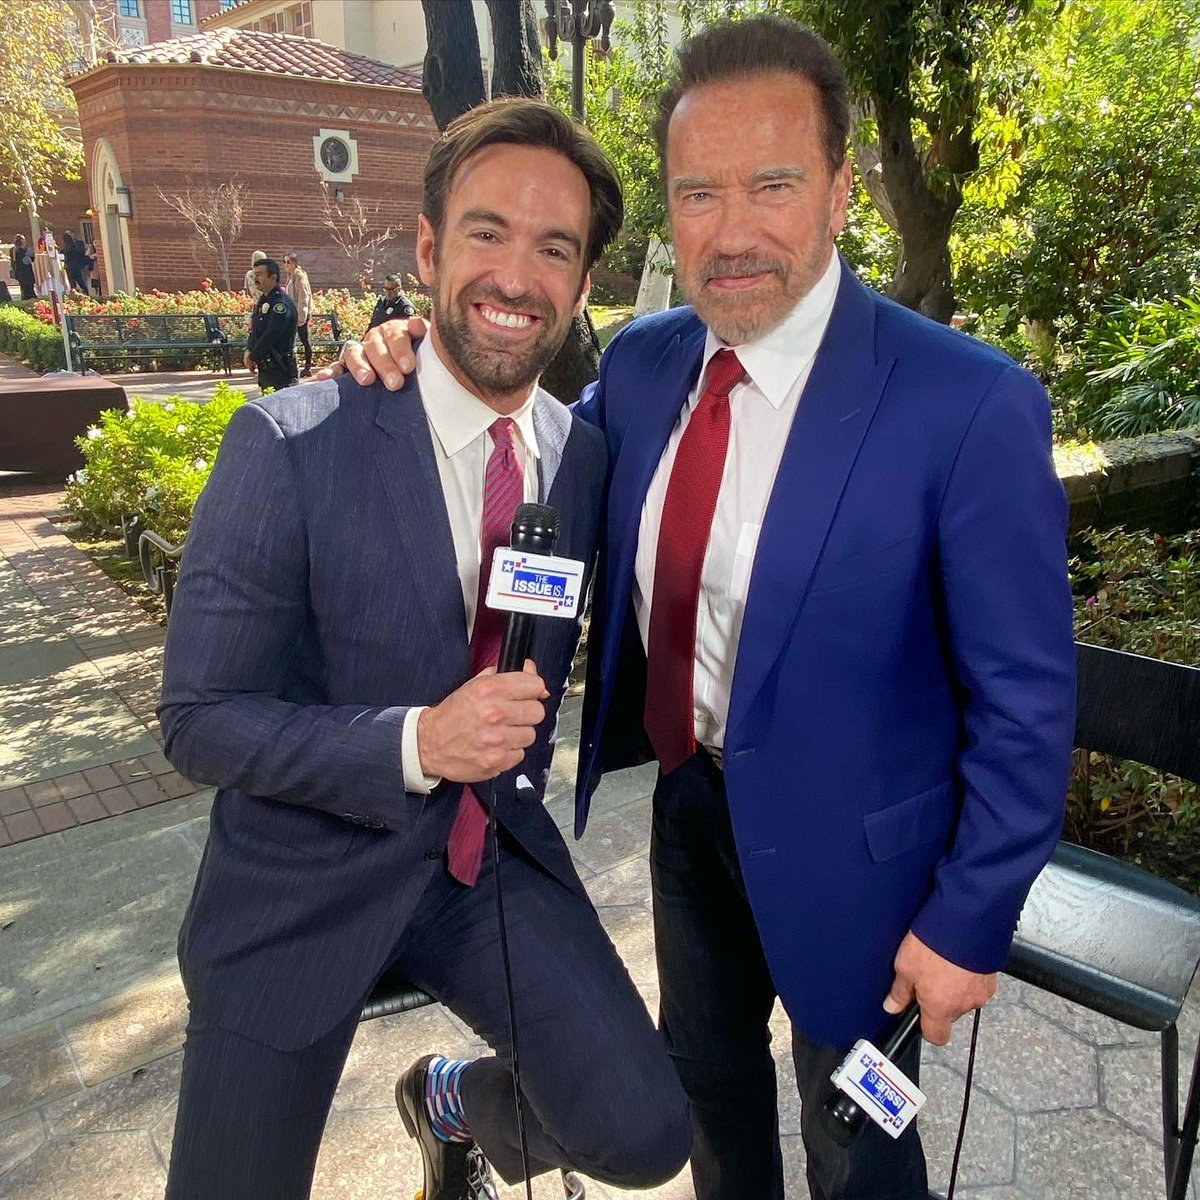 .@GovArnoldUSC brought together top leaders to find solutions to CA's homeless crisis.   @TheIssueIsShow is now streaming feat: @Schwarzenegger, @SecretaryCarson, @Kevin_Faulconer, @Mayor_Steinberg, @RobertGarciaLB, @kathrynbarger, @HollyJMitchell.